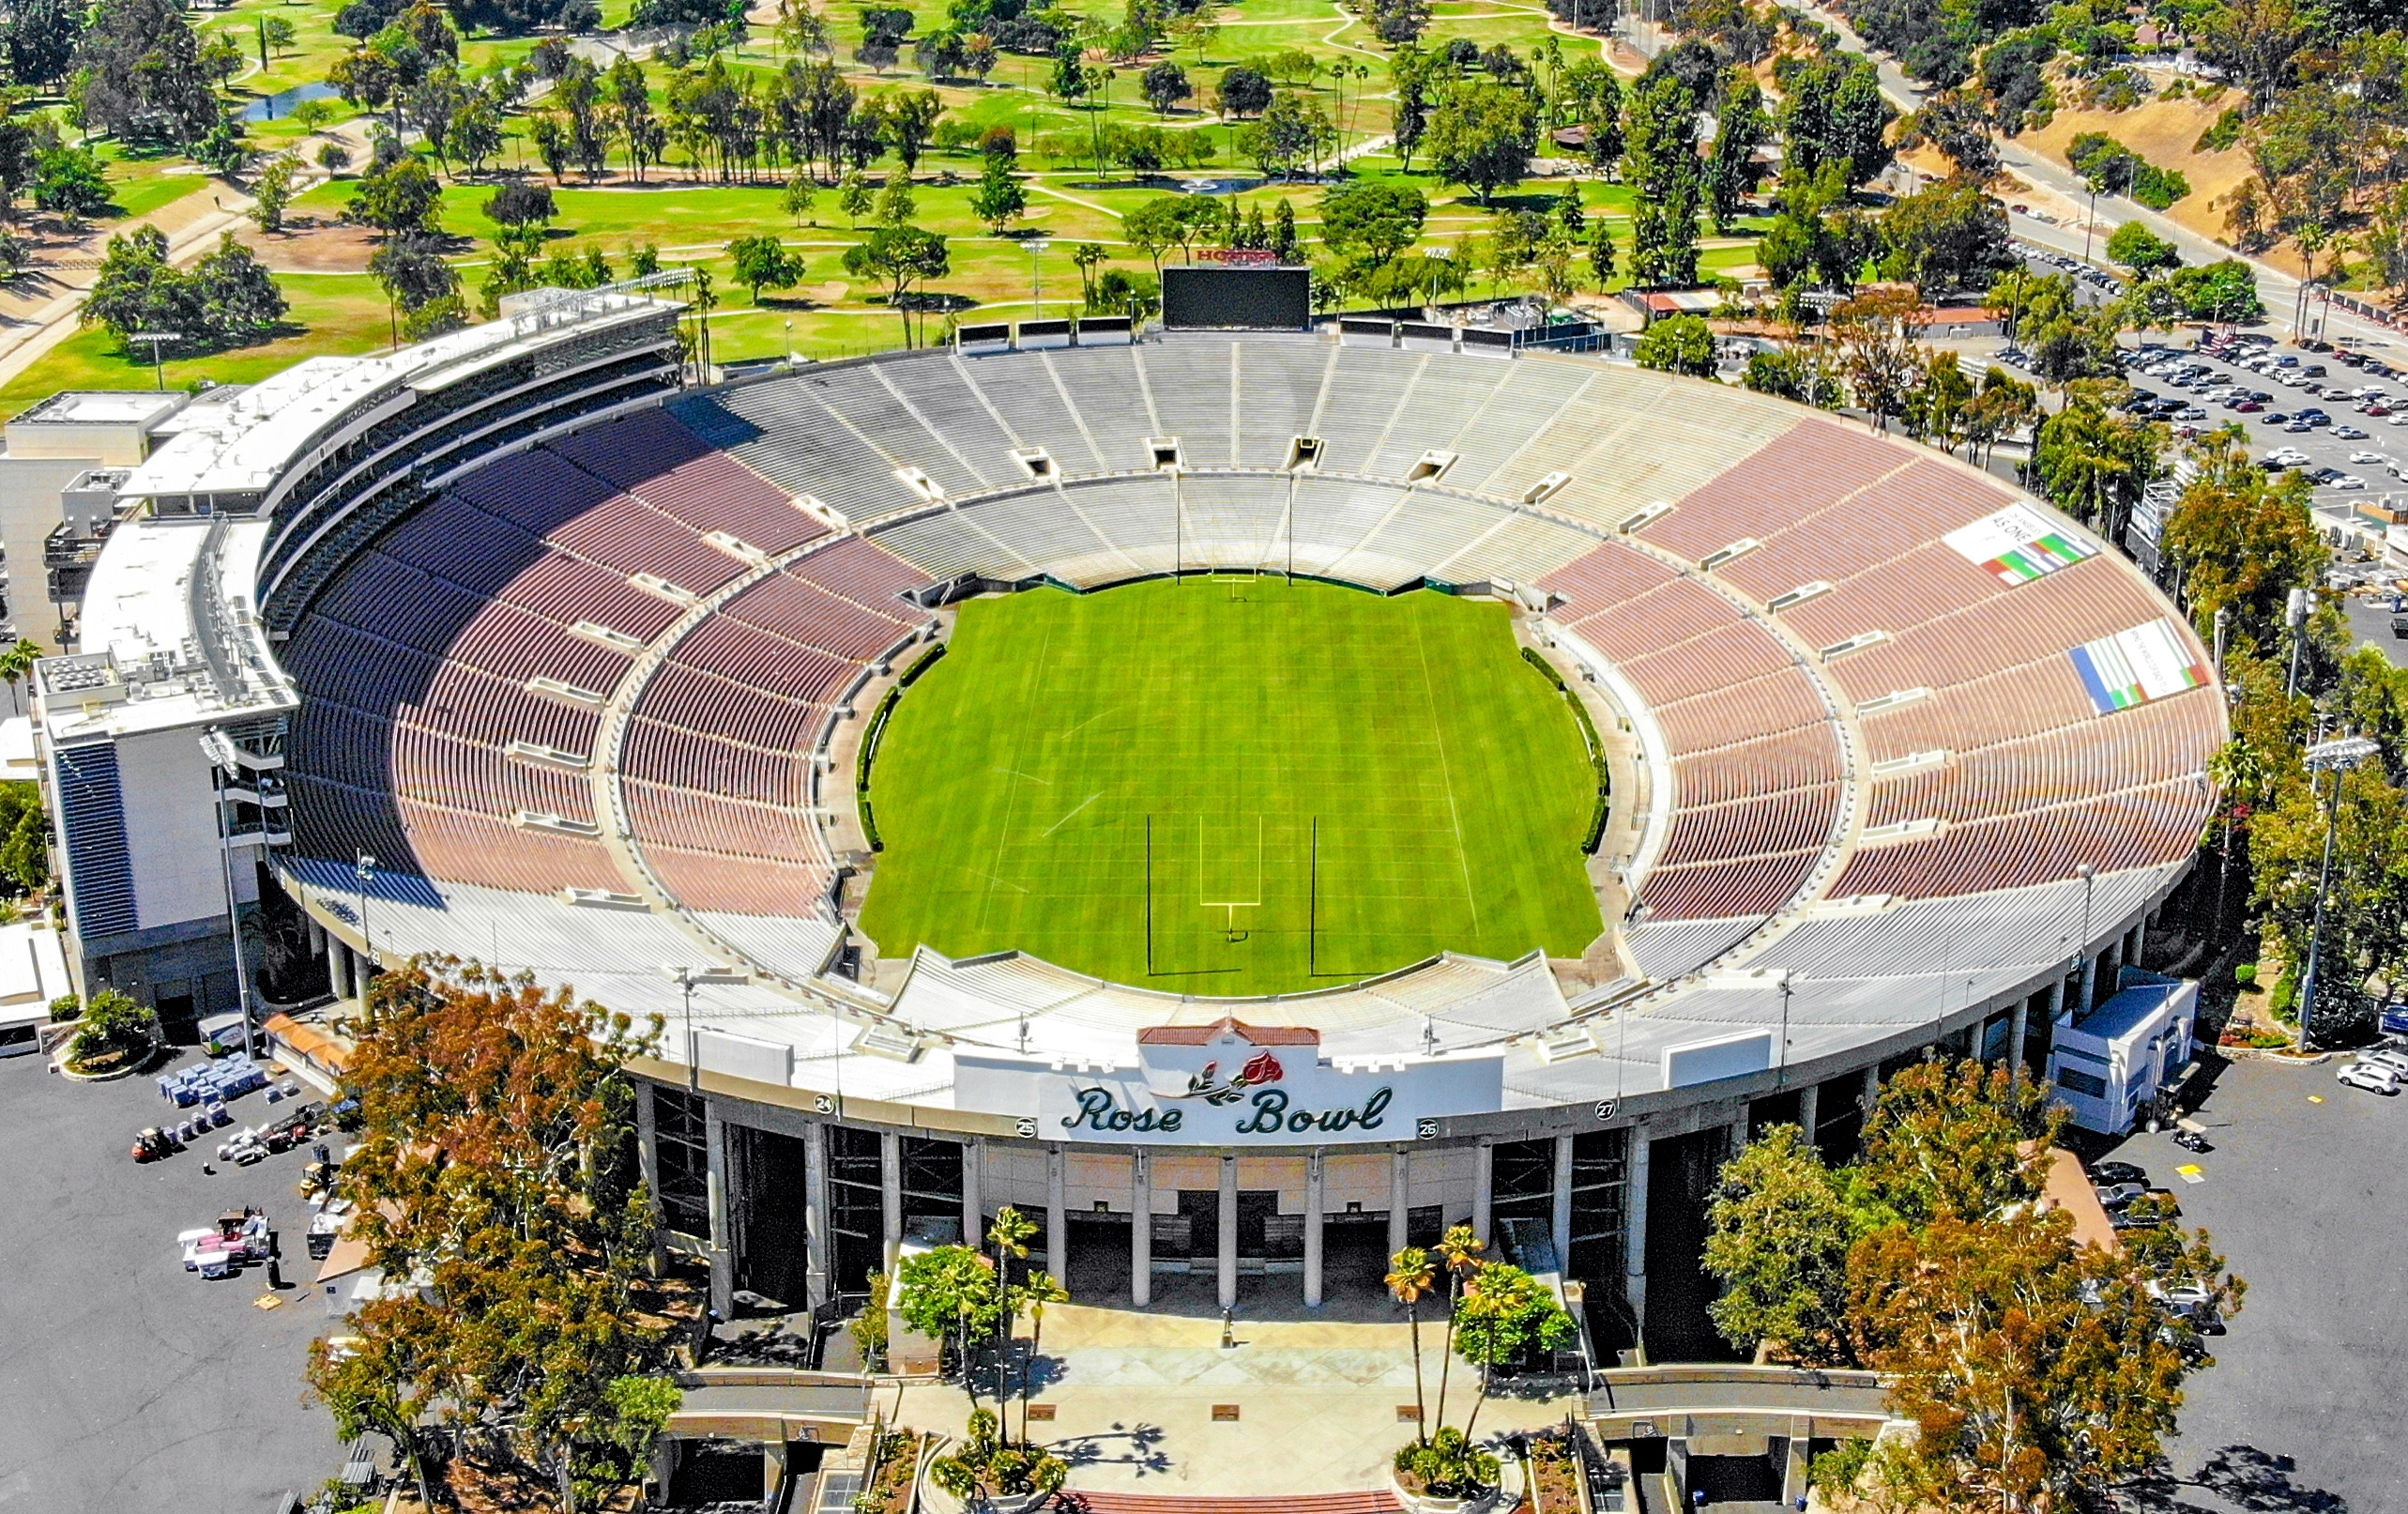 Rose Bowl (Stadium) - Wikipedia intended for Super Bowl Stadium Seating Capacity